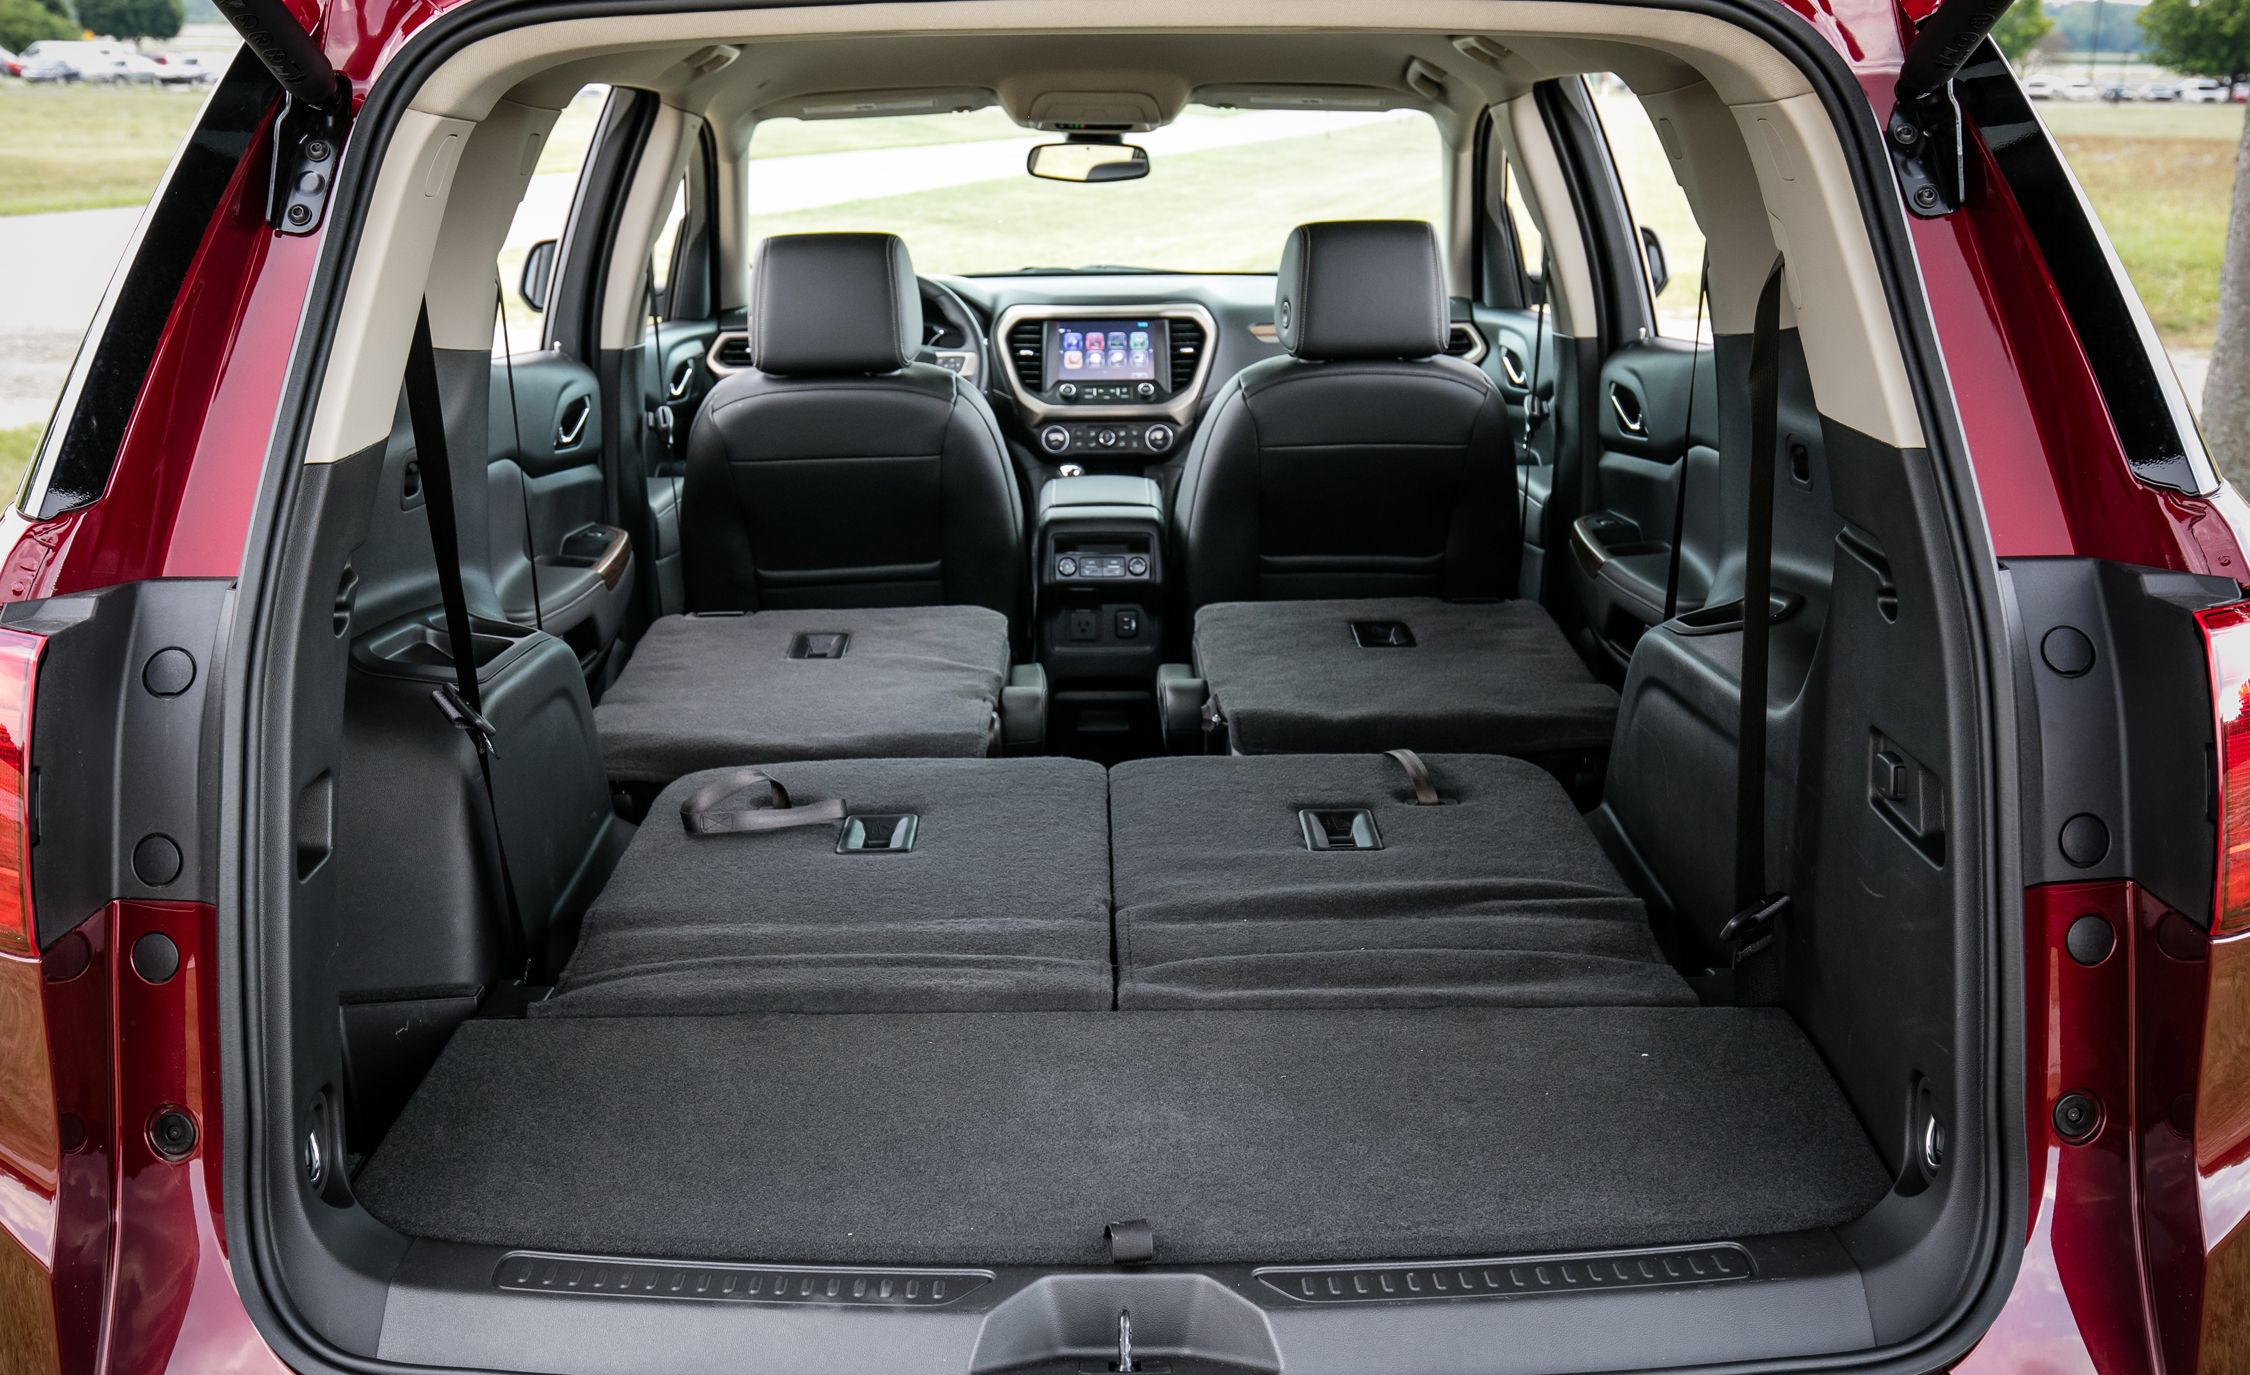 2017 Gmc Acadia Cargo Space And Storage Review Car And